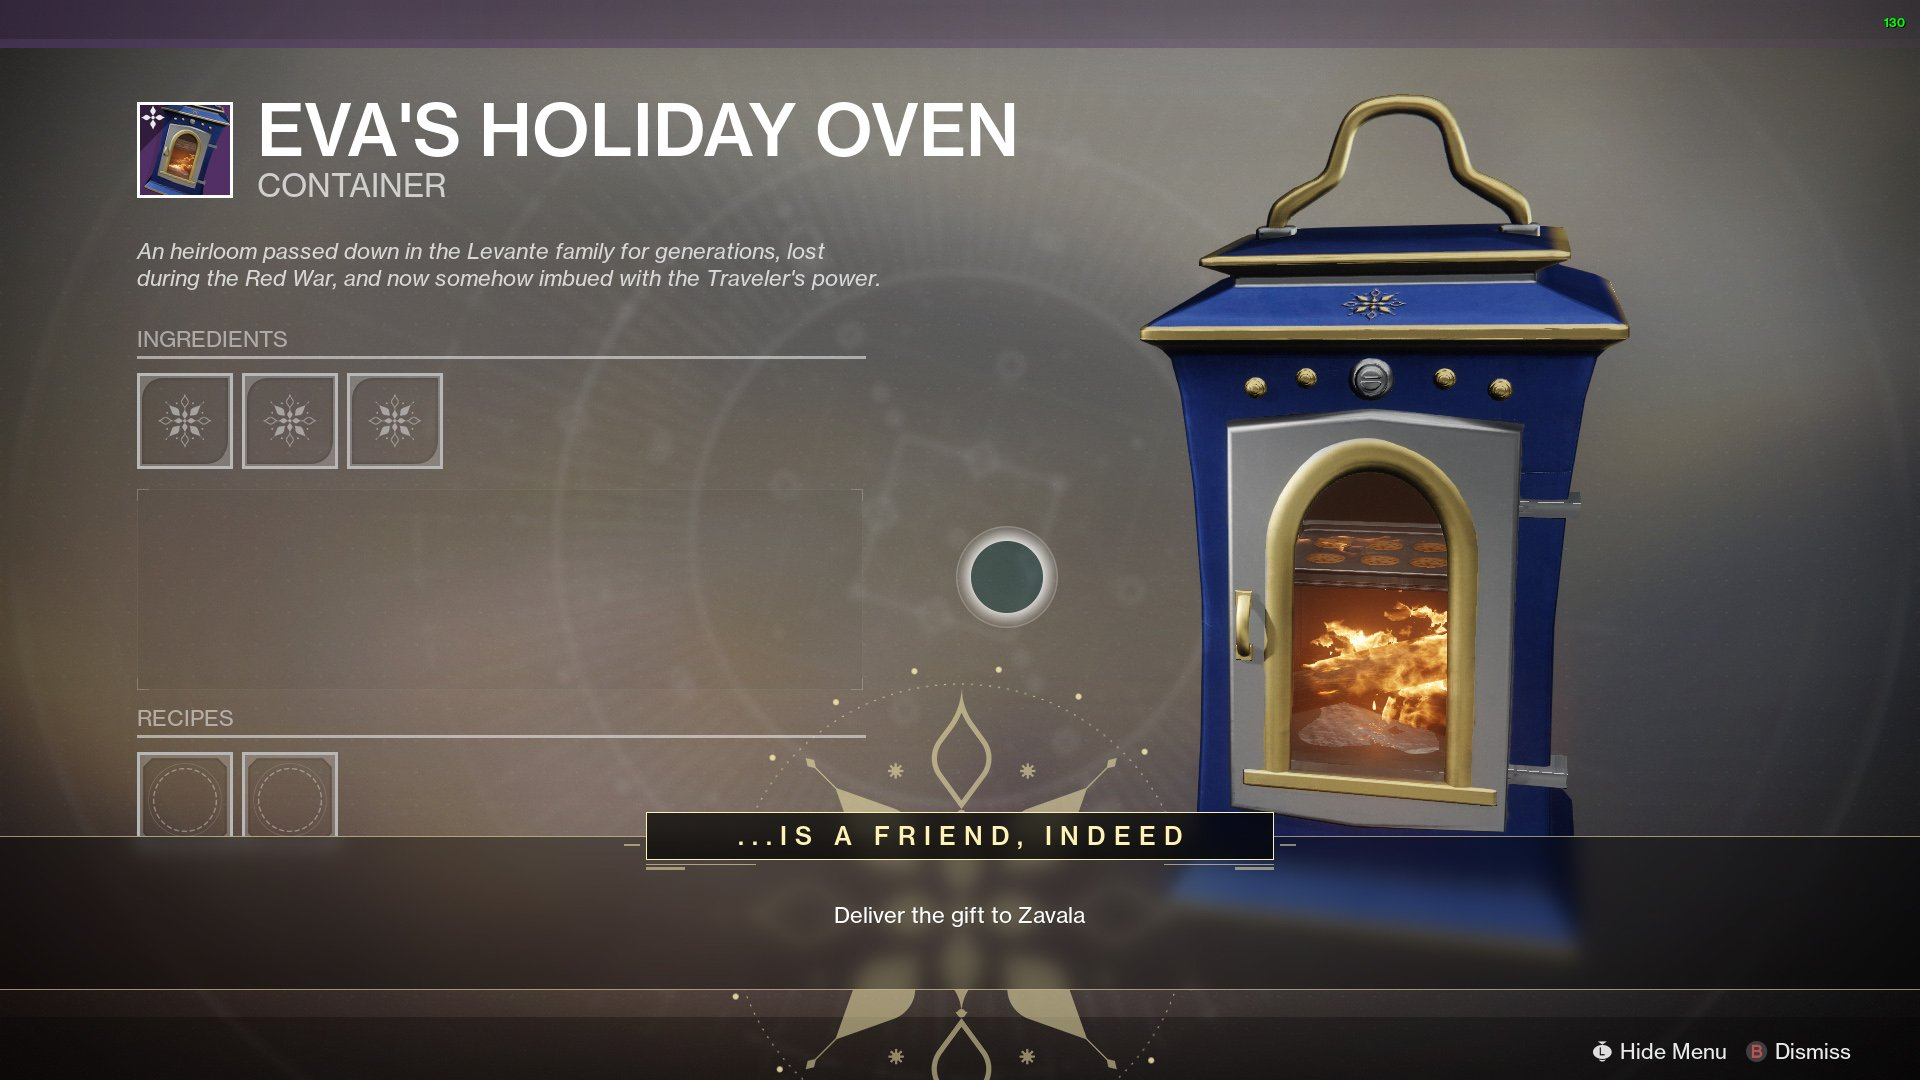 The oven used in Dawning Holiday Baking Recipes